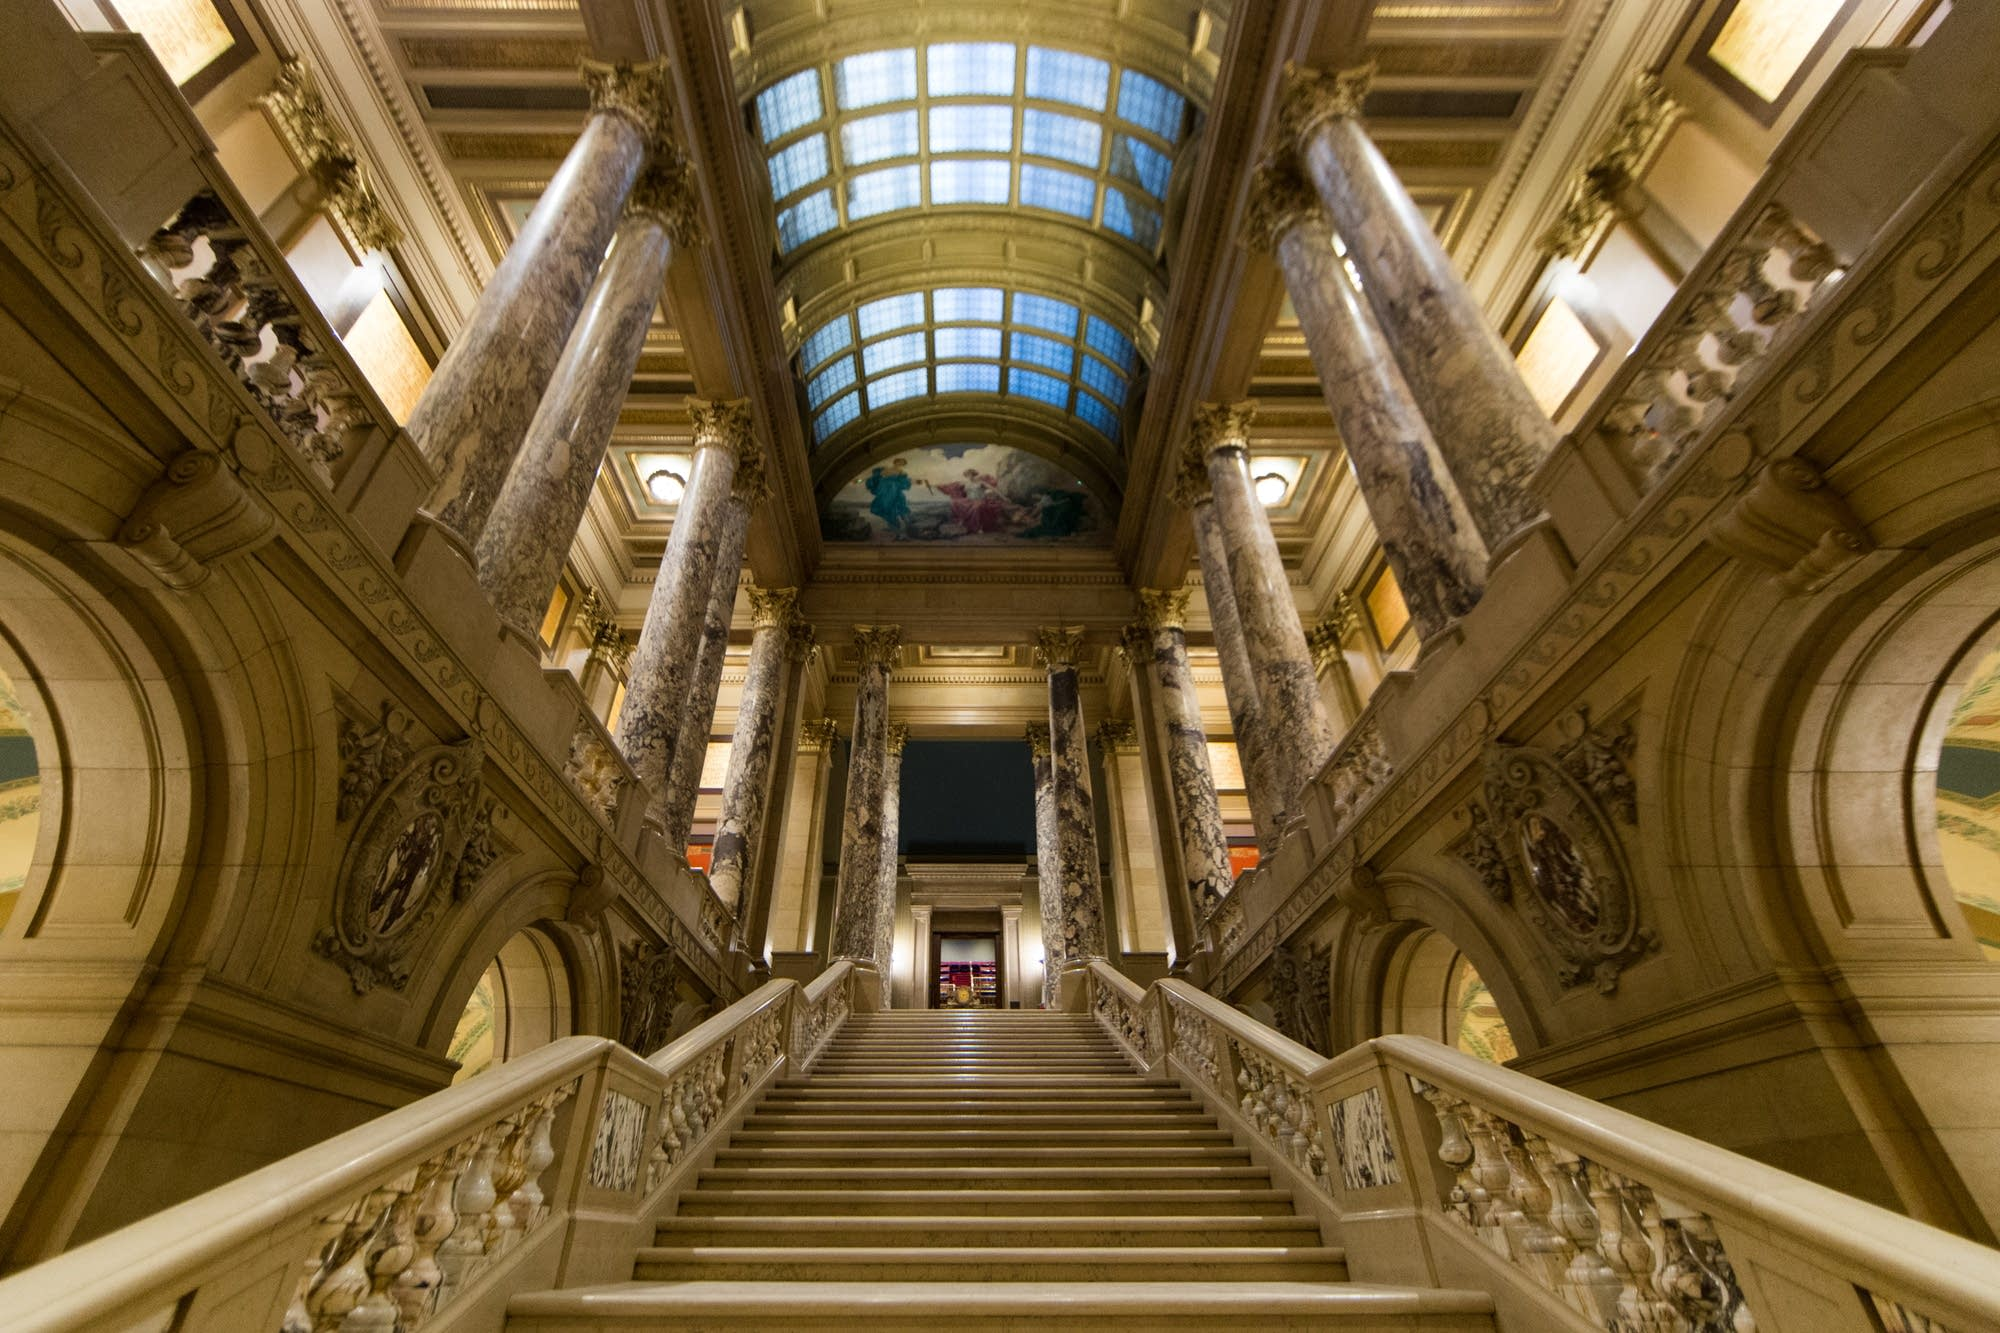 One the the Capitol's grand staircases.